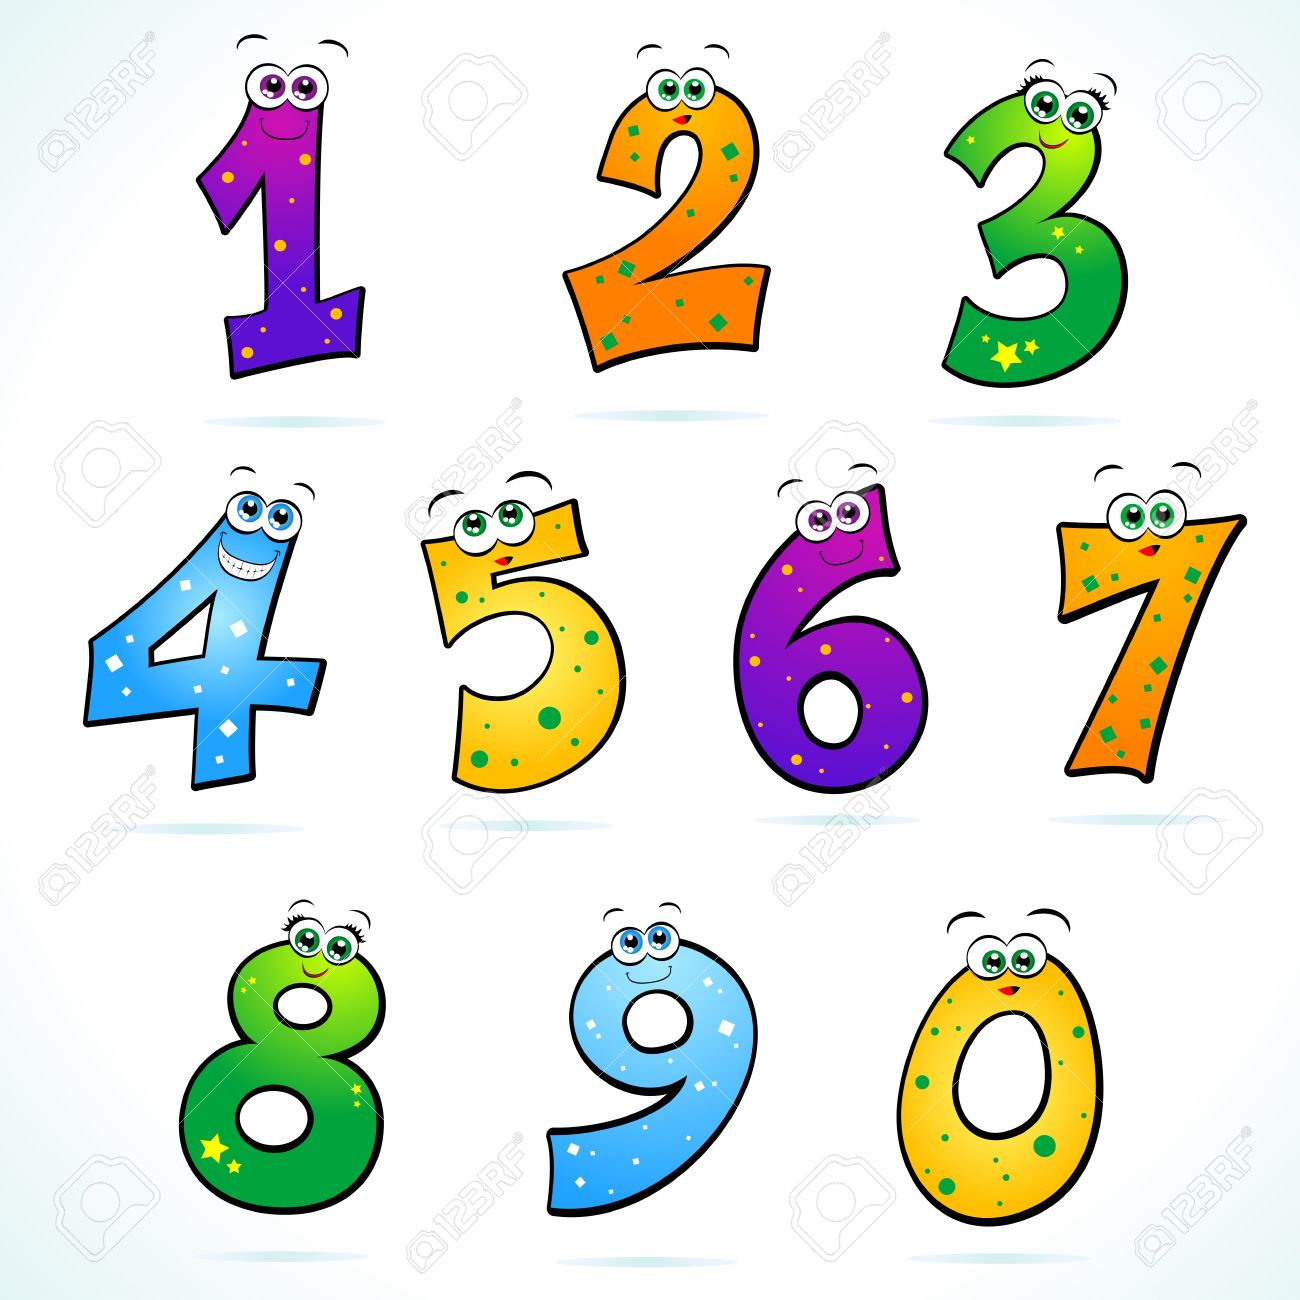 Download Funny Numbers Clipart-Download Funny Numbers Clipart-10